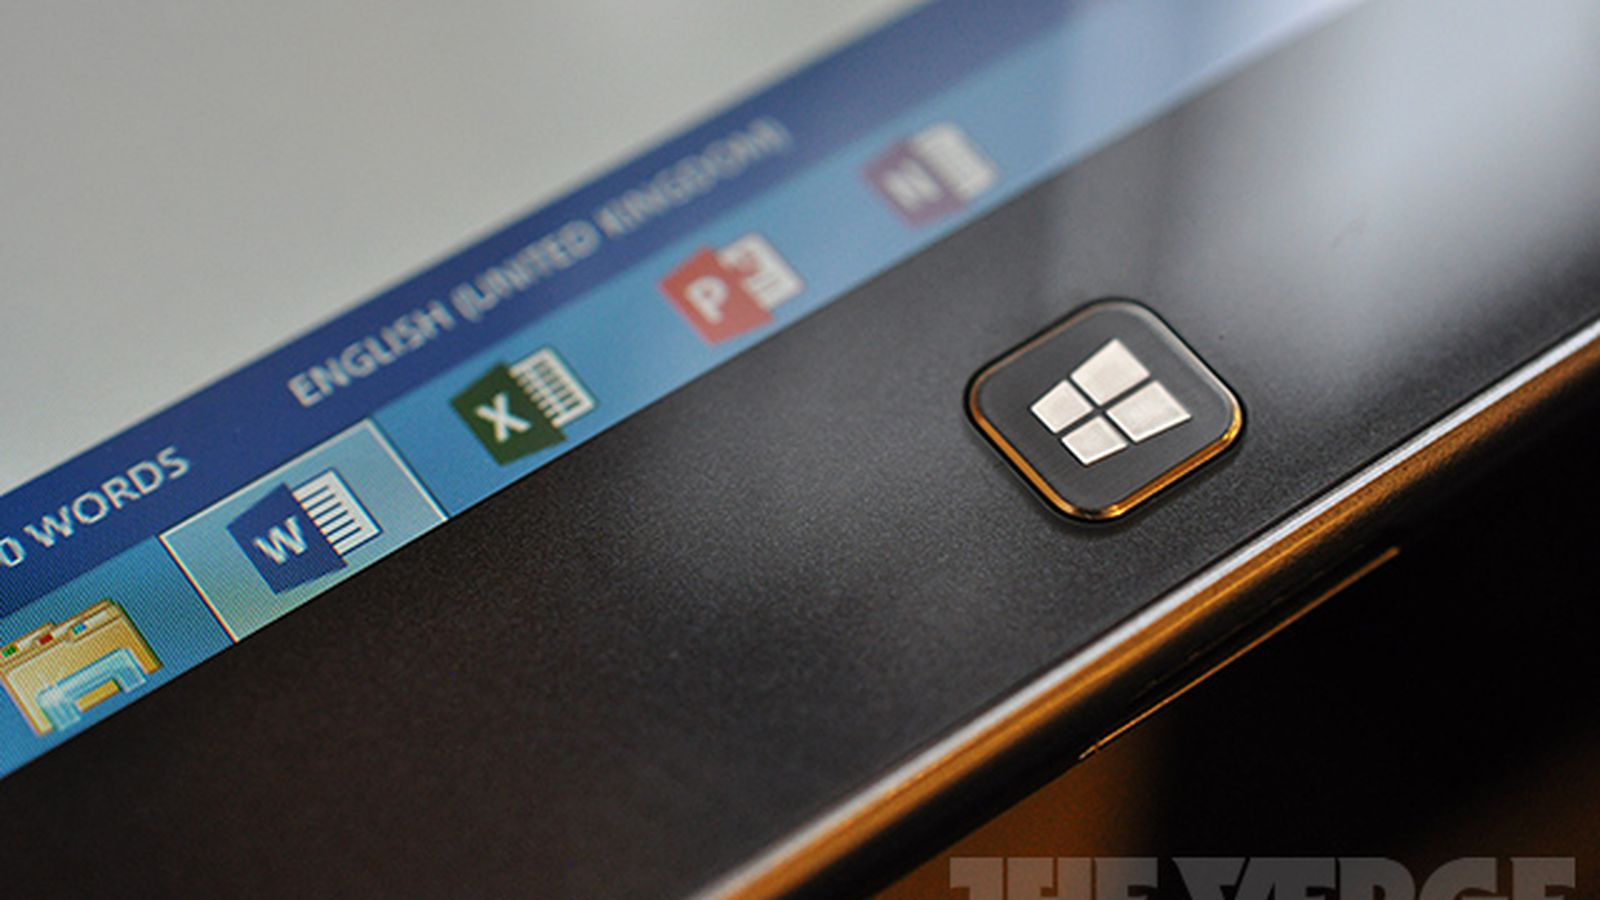 Office web apps update set to include real time editing - Get updates for windows office and more ...